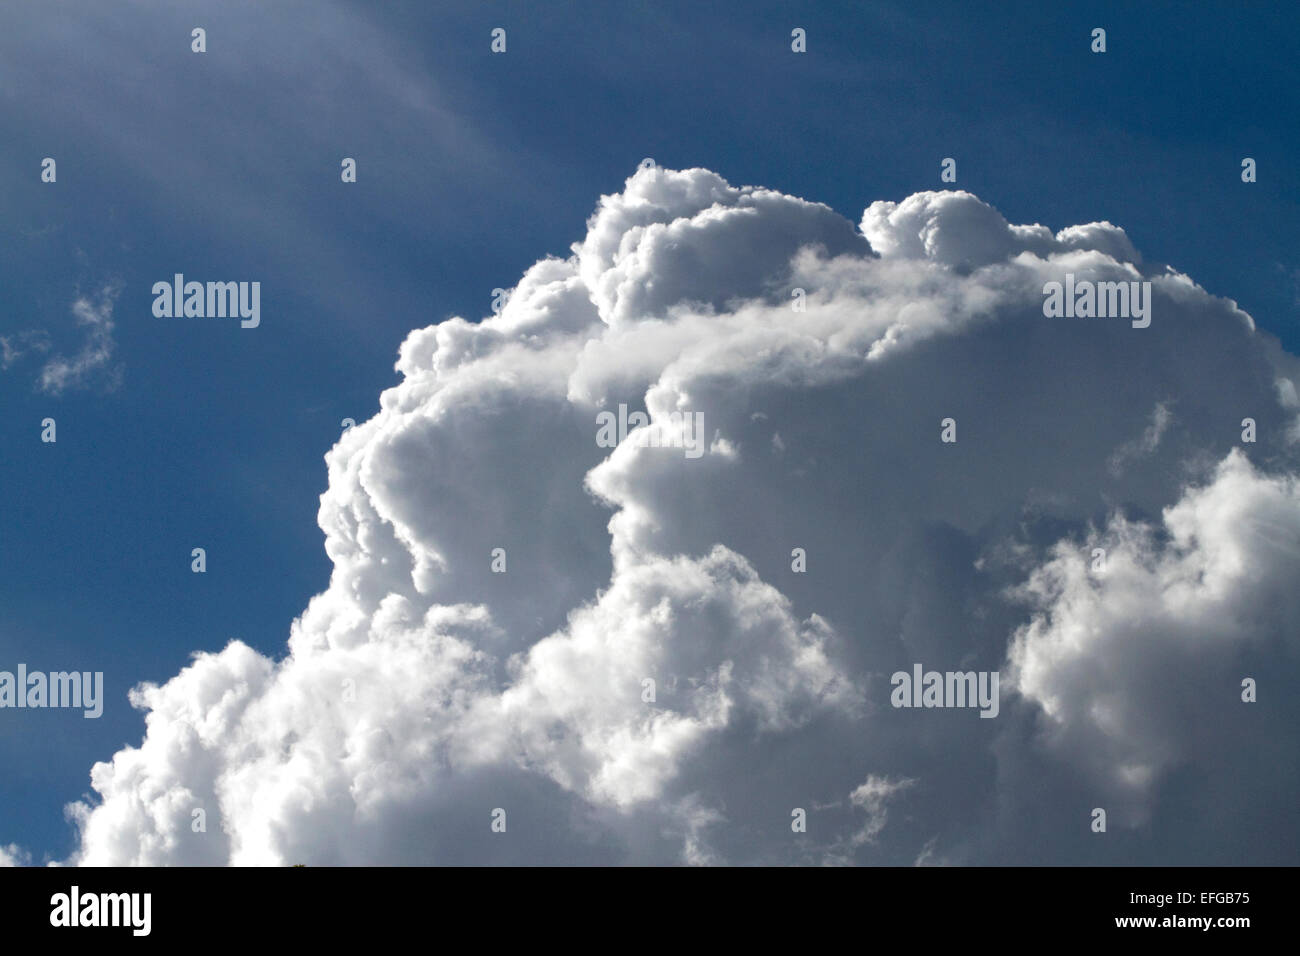 Cumulonimbus cloud. - Stock Image